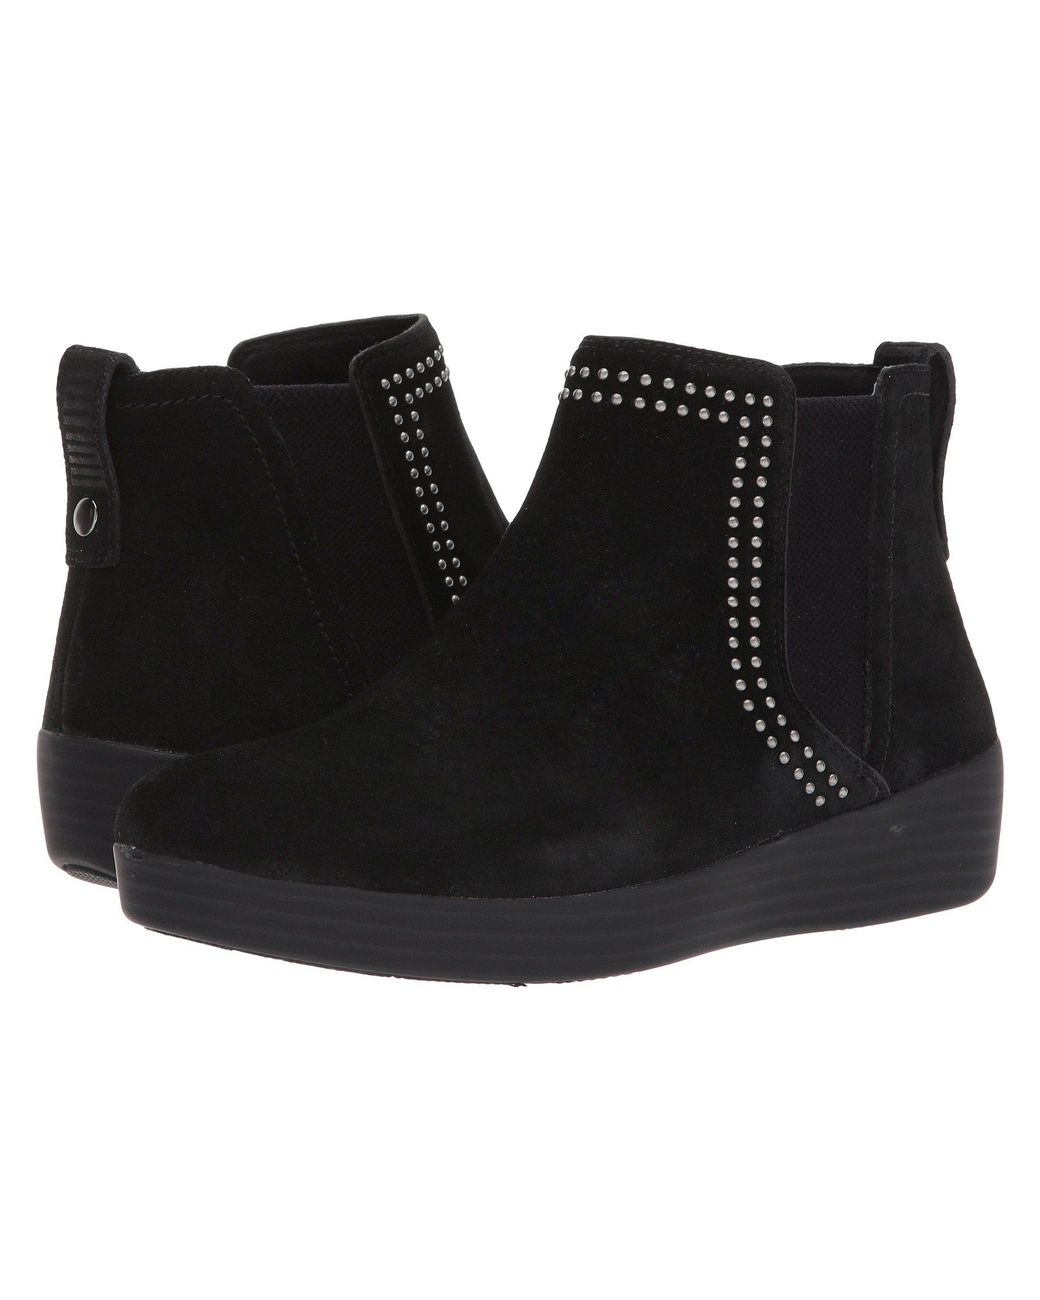 f9a6ccea08 Lyst - Fitflop Superchelsea Suede Boot W  Studs in Black - Save 35%